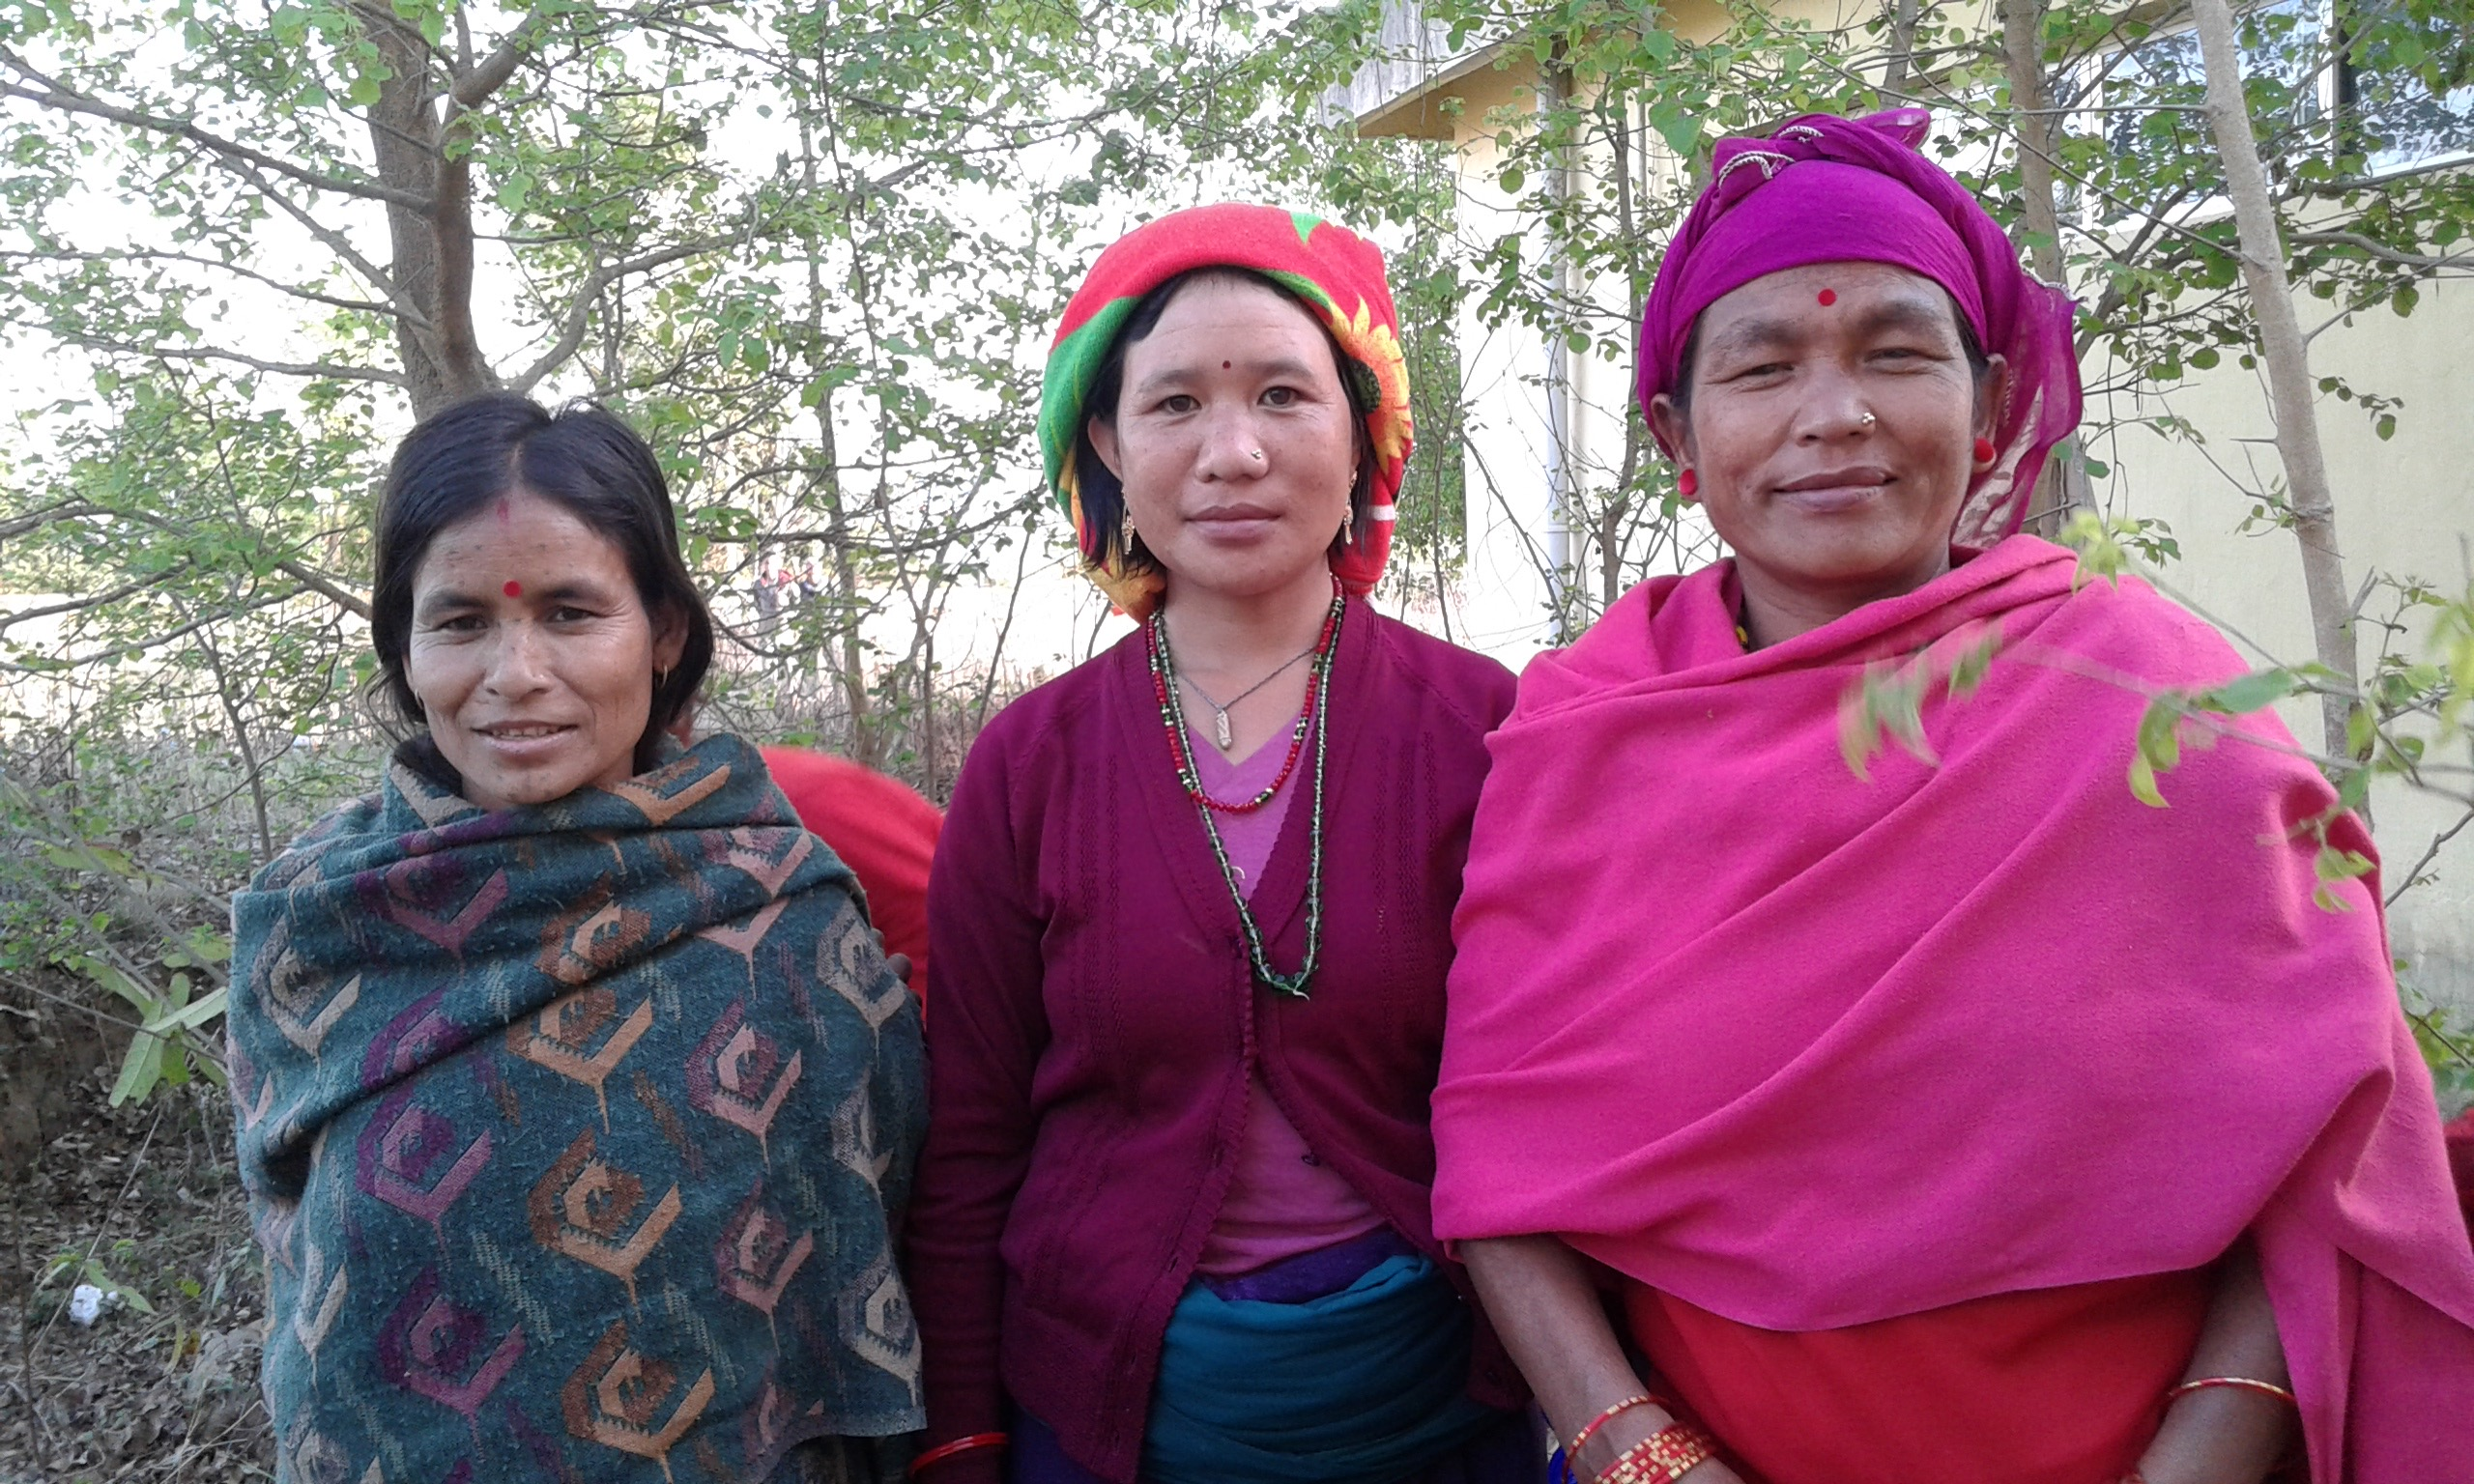 Lali, pictured here on the far right, received fistula repair surgery at Mid-Western Regional Hospital in Surkhet, Nepal. Lali had lived with the condition a decade before she was able to access surgical care. (Courtesy photo)